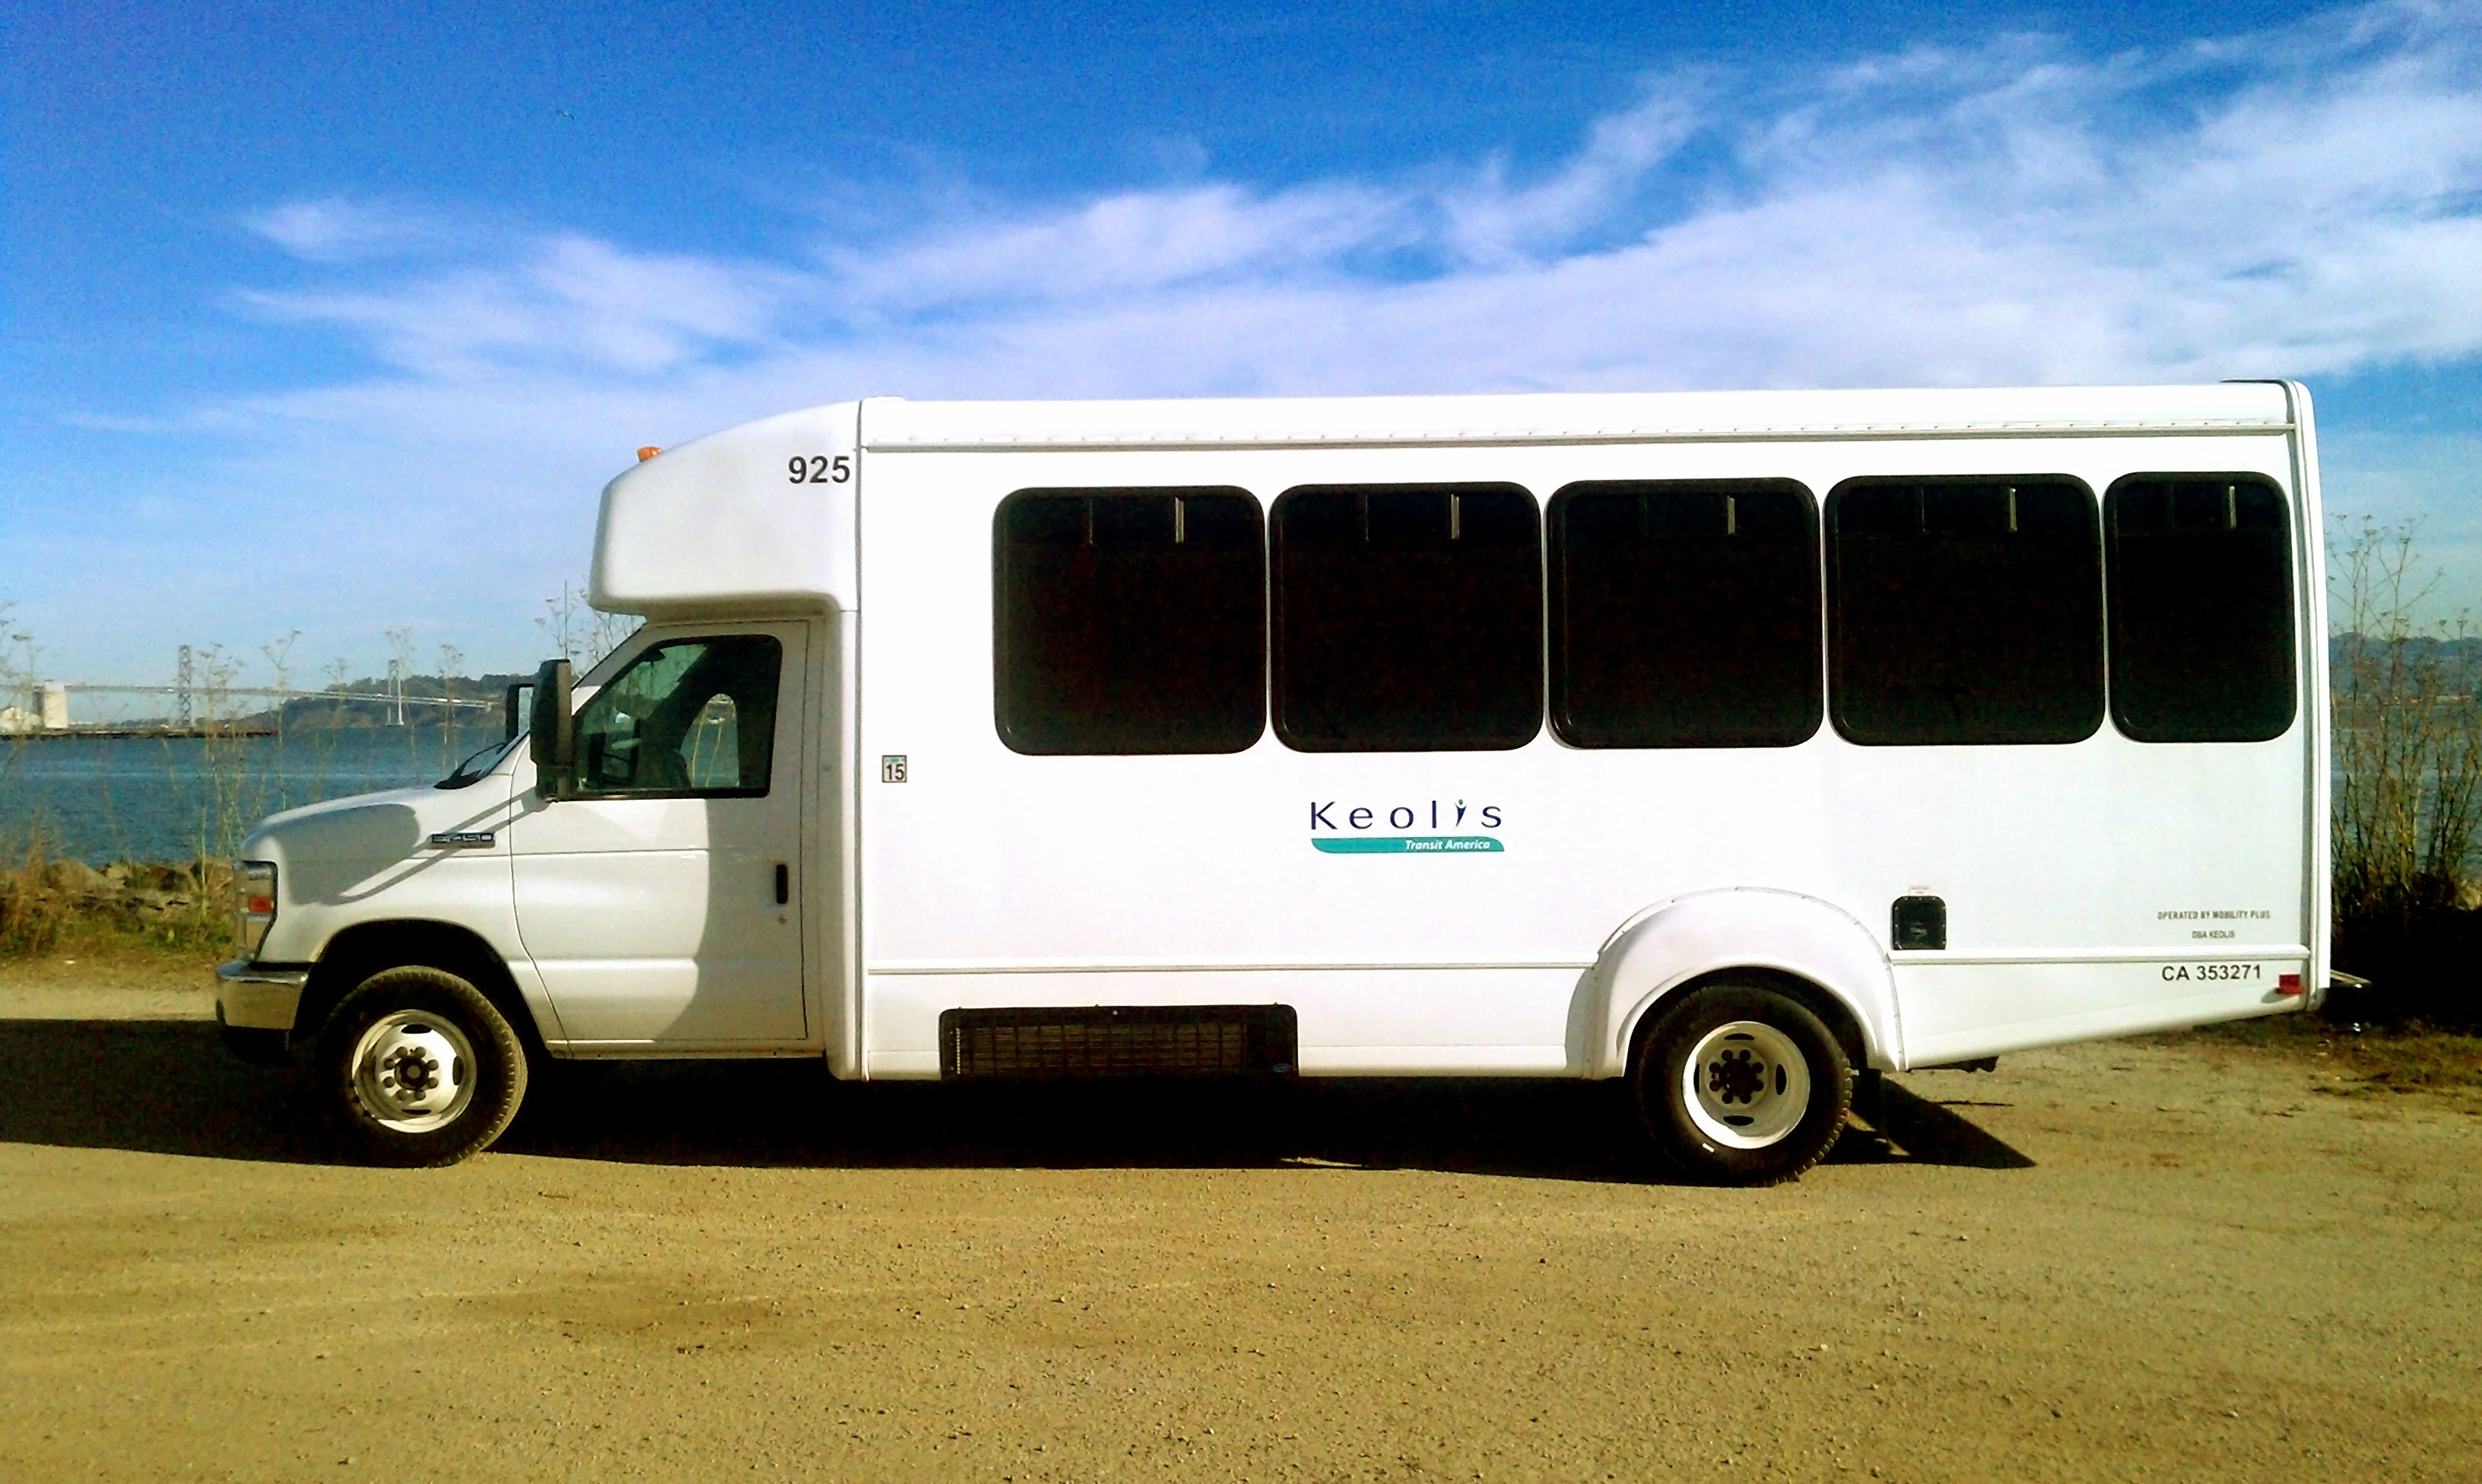 Keolis awarded contract for Los Angeles paratransit program